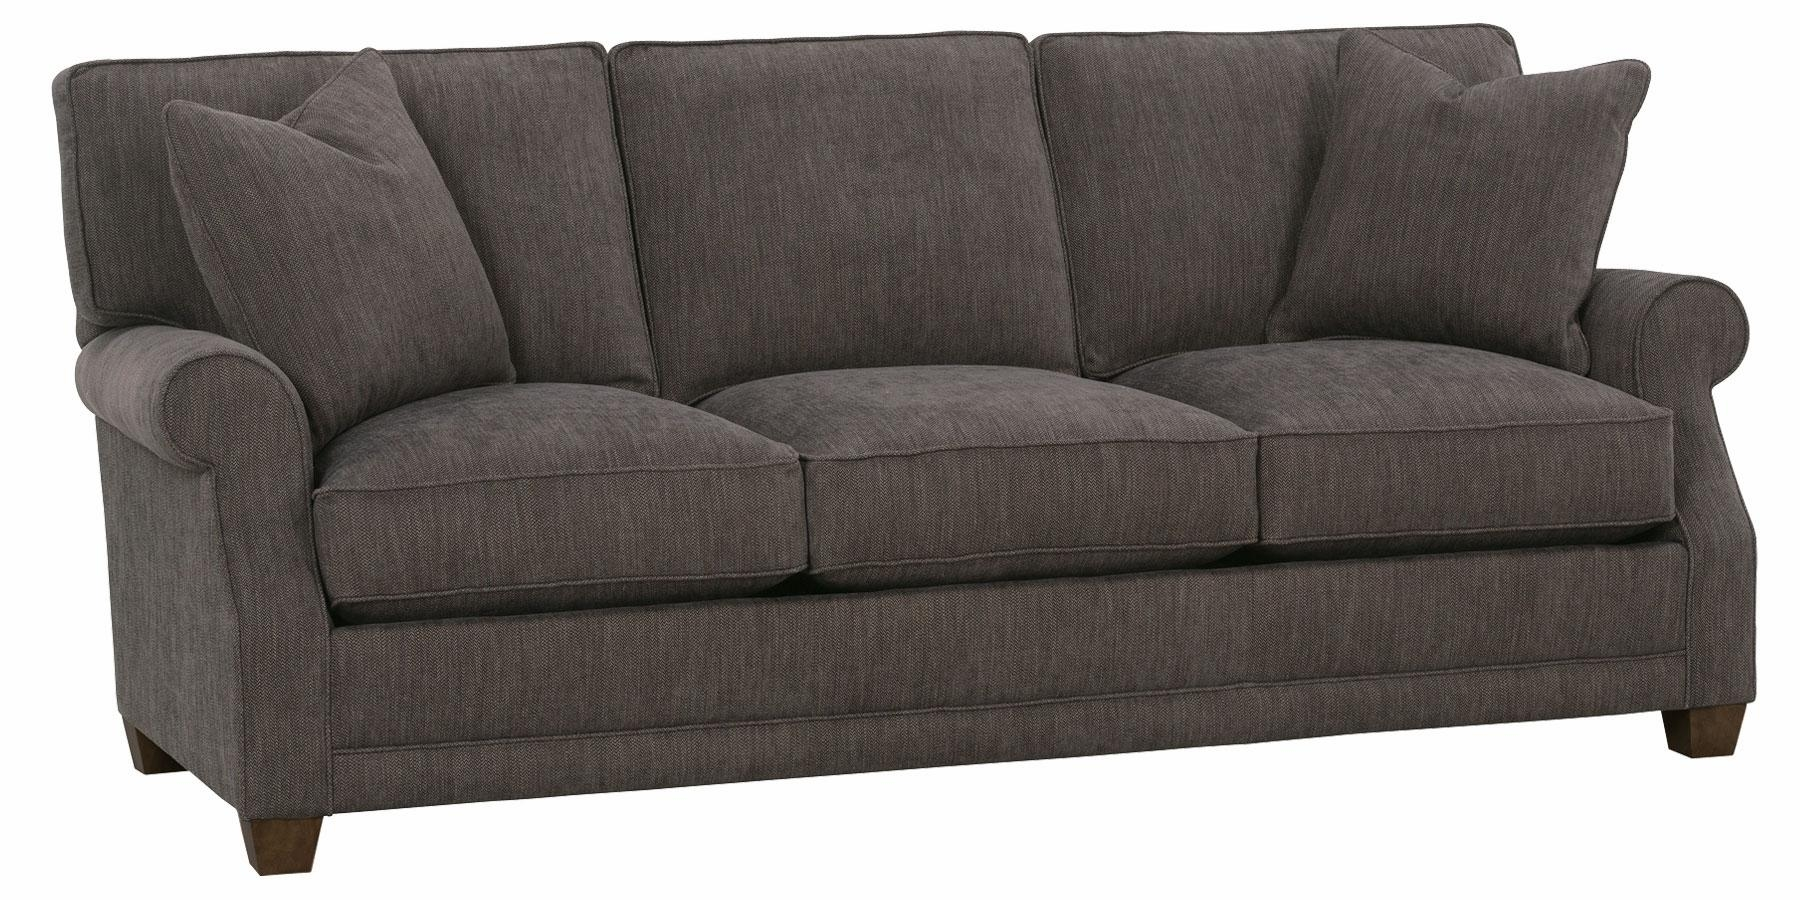 sleeper sofa tampa florida american freight reviews 20 collection of sofas ideas